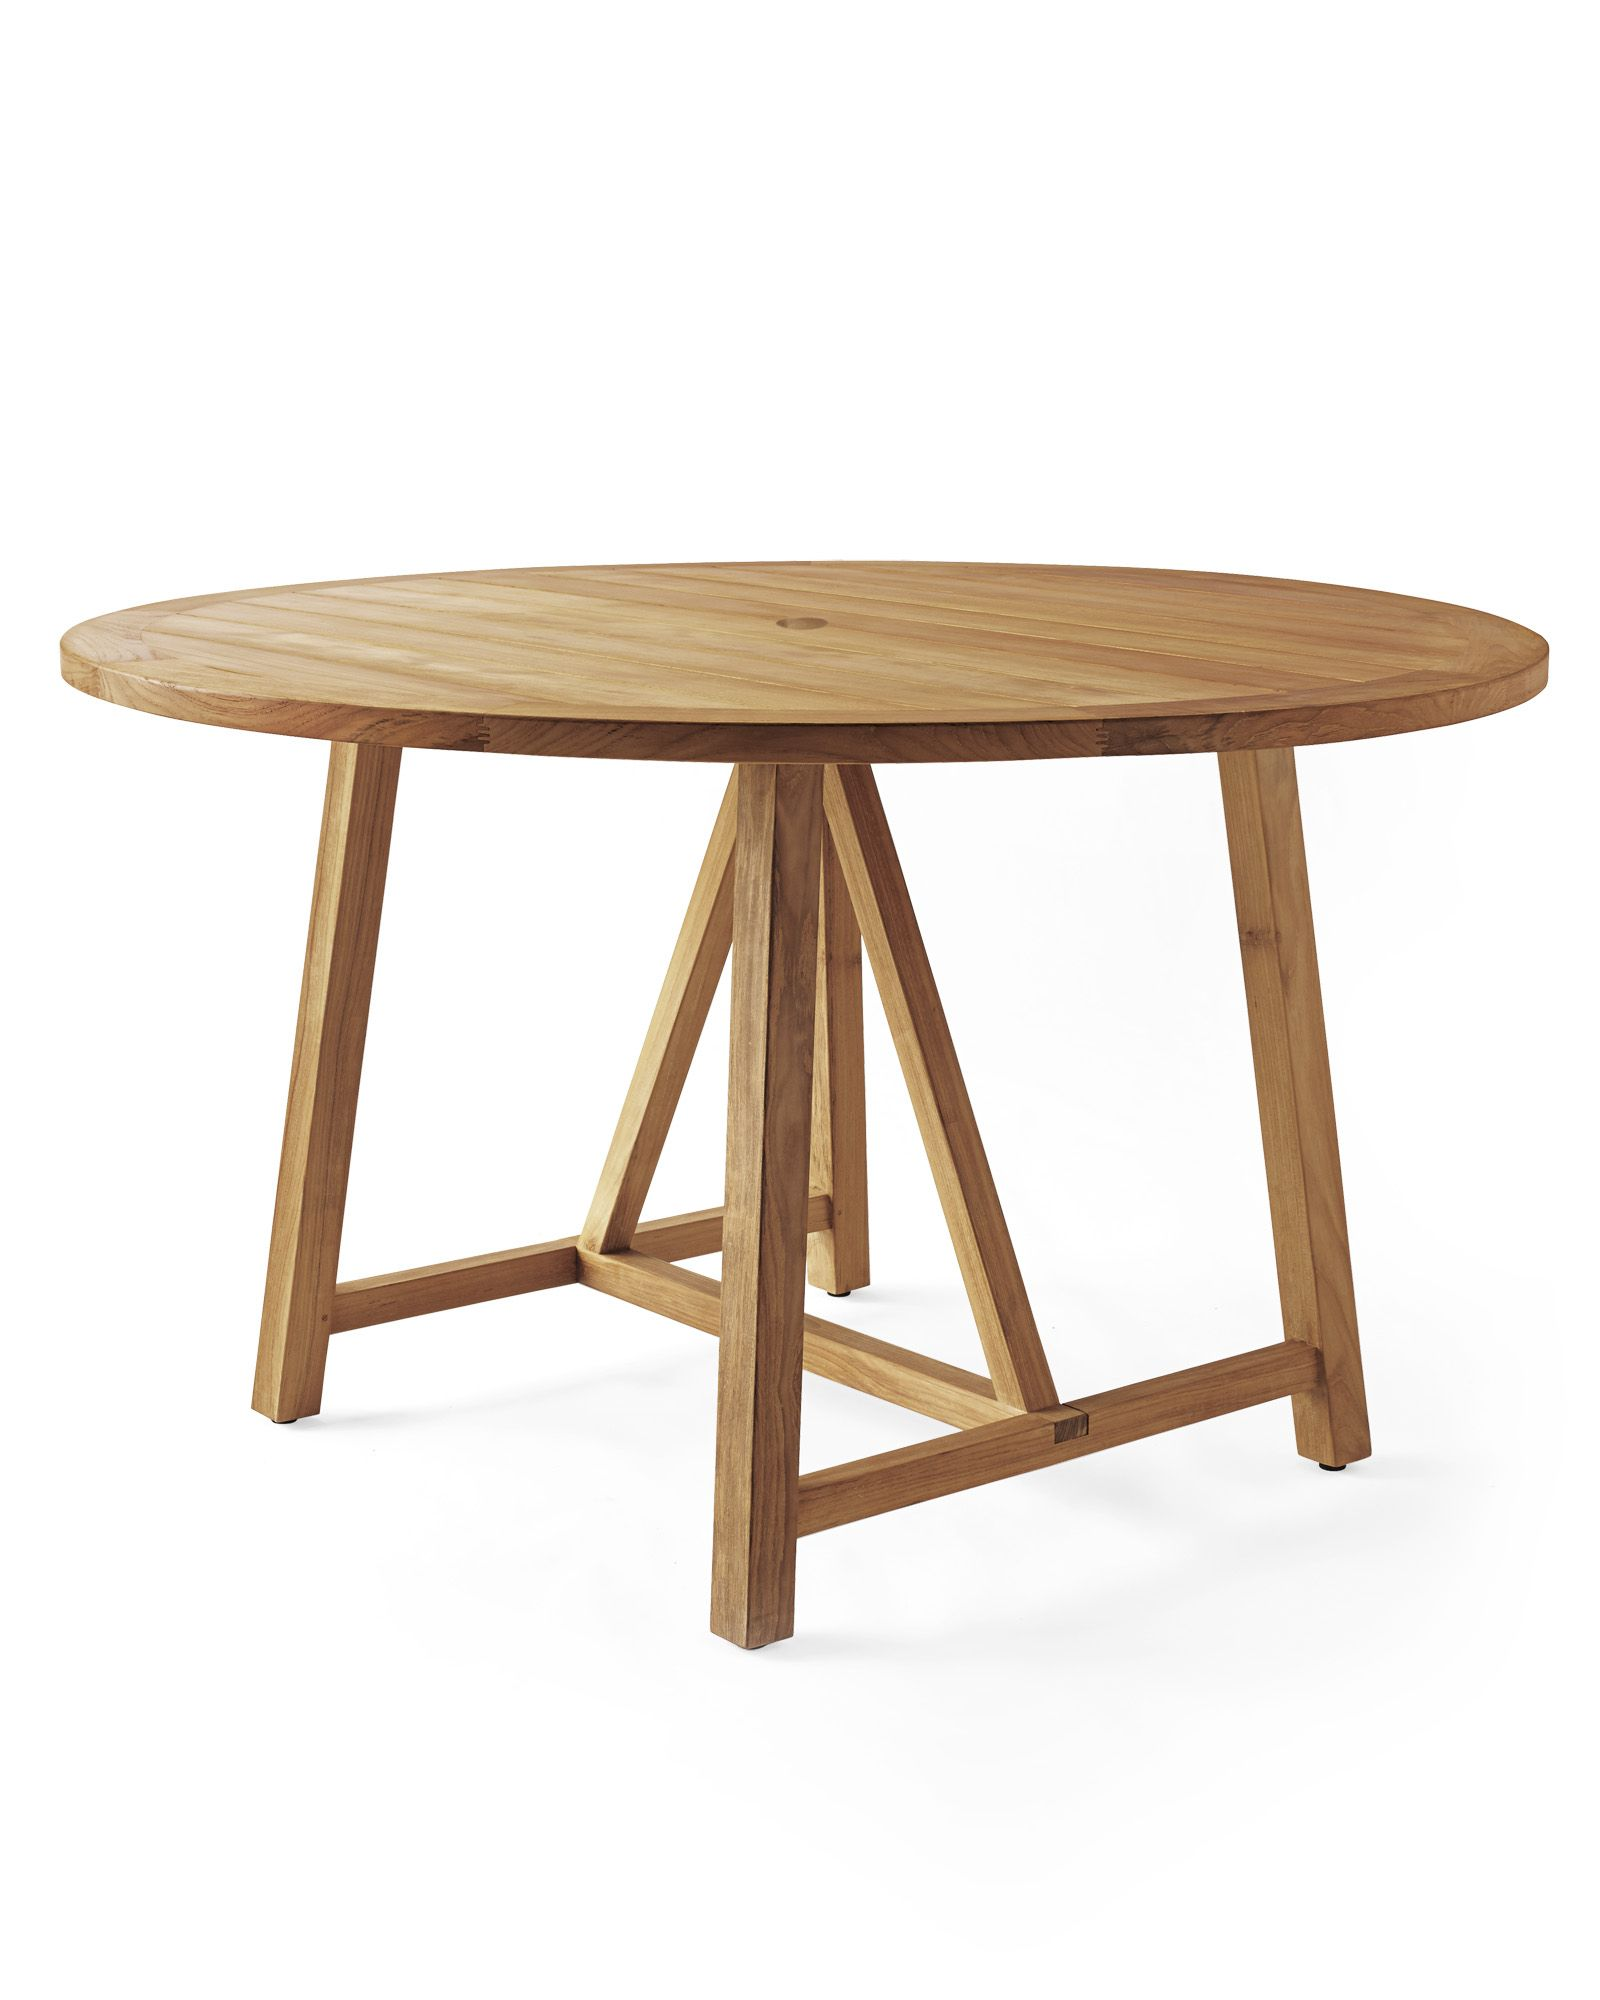 Crosby Round Coffee Table Peroba 38 W X 38 D X 18 H Coffee Table Reclaimed Wood Coffee Table Modern Wood Coffee Table [ 1200 x 1200 Pixel ]